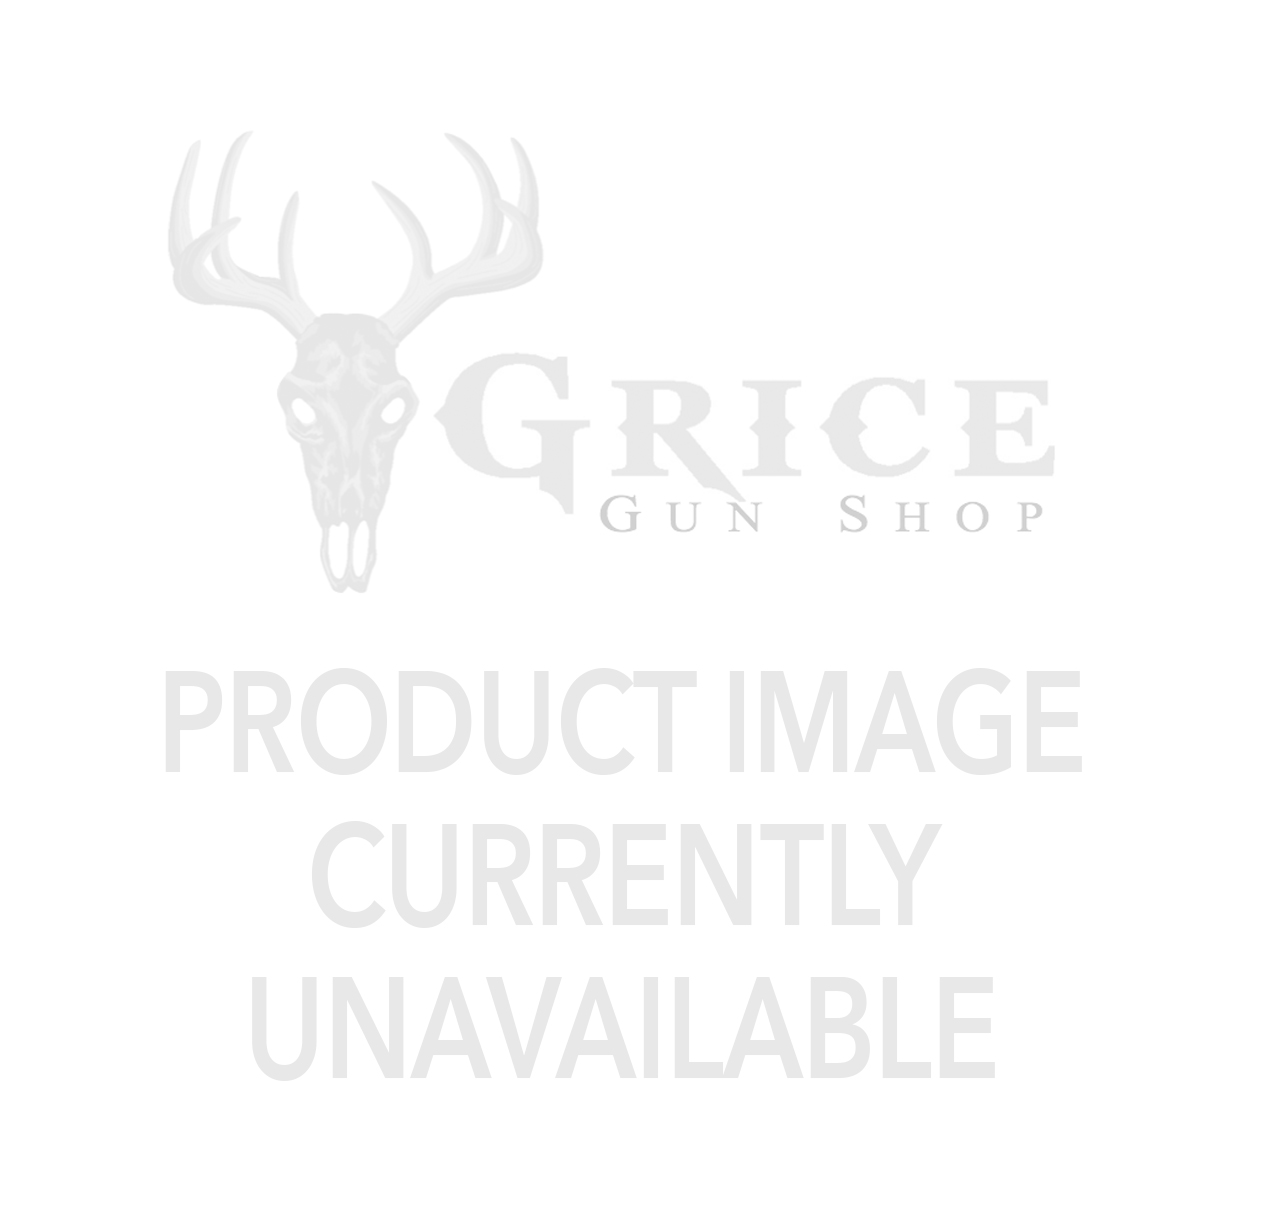 Simmons - ProHunter Long Eye Relief 4x32mm Truplex Reticle (Silver)